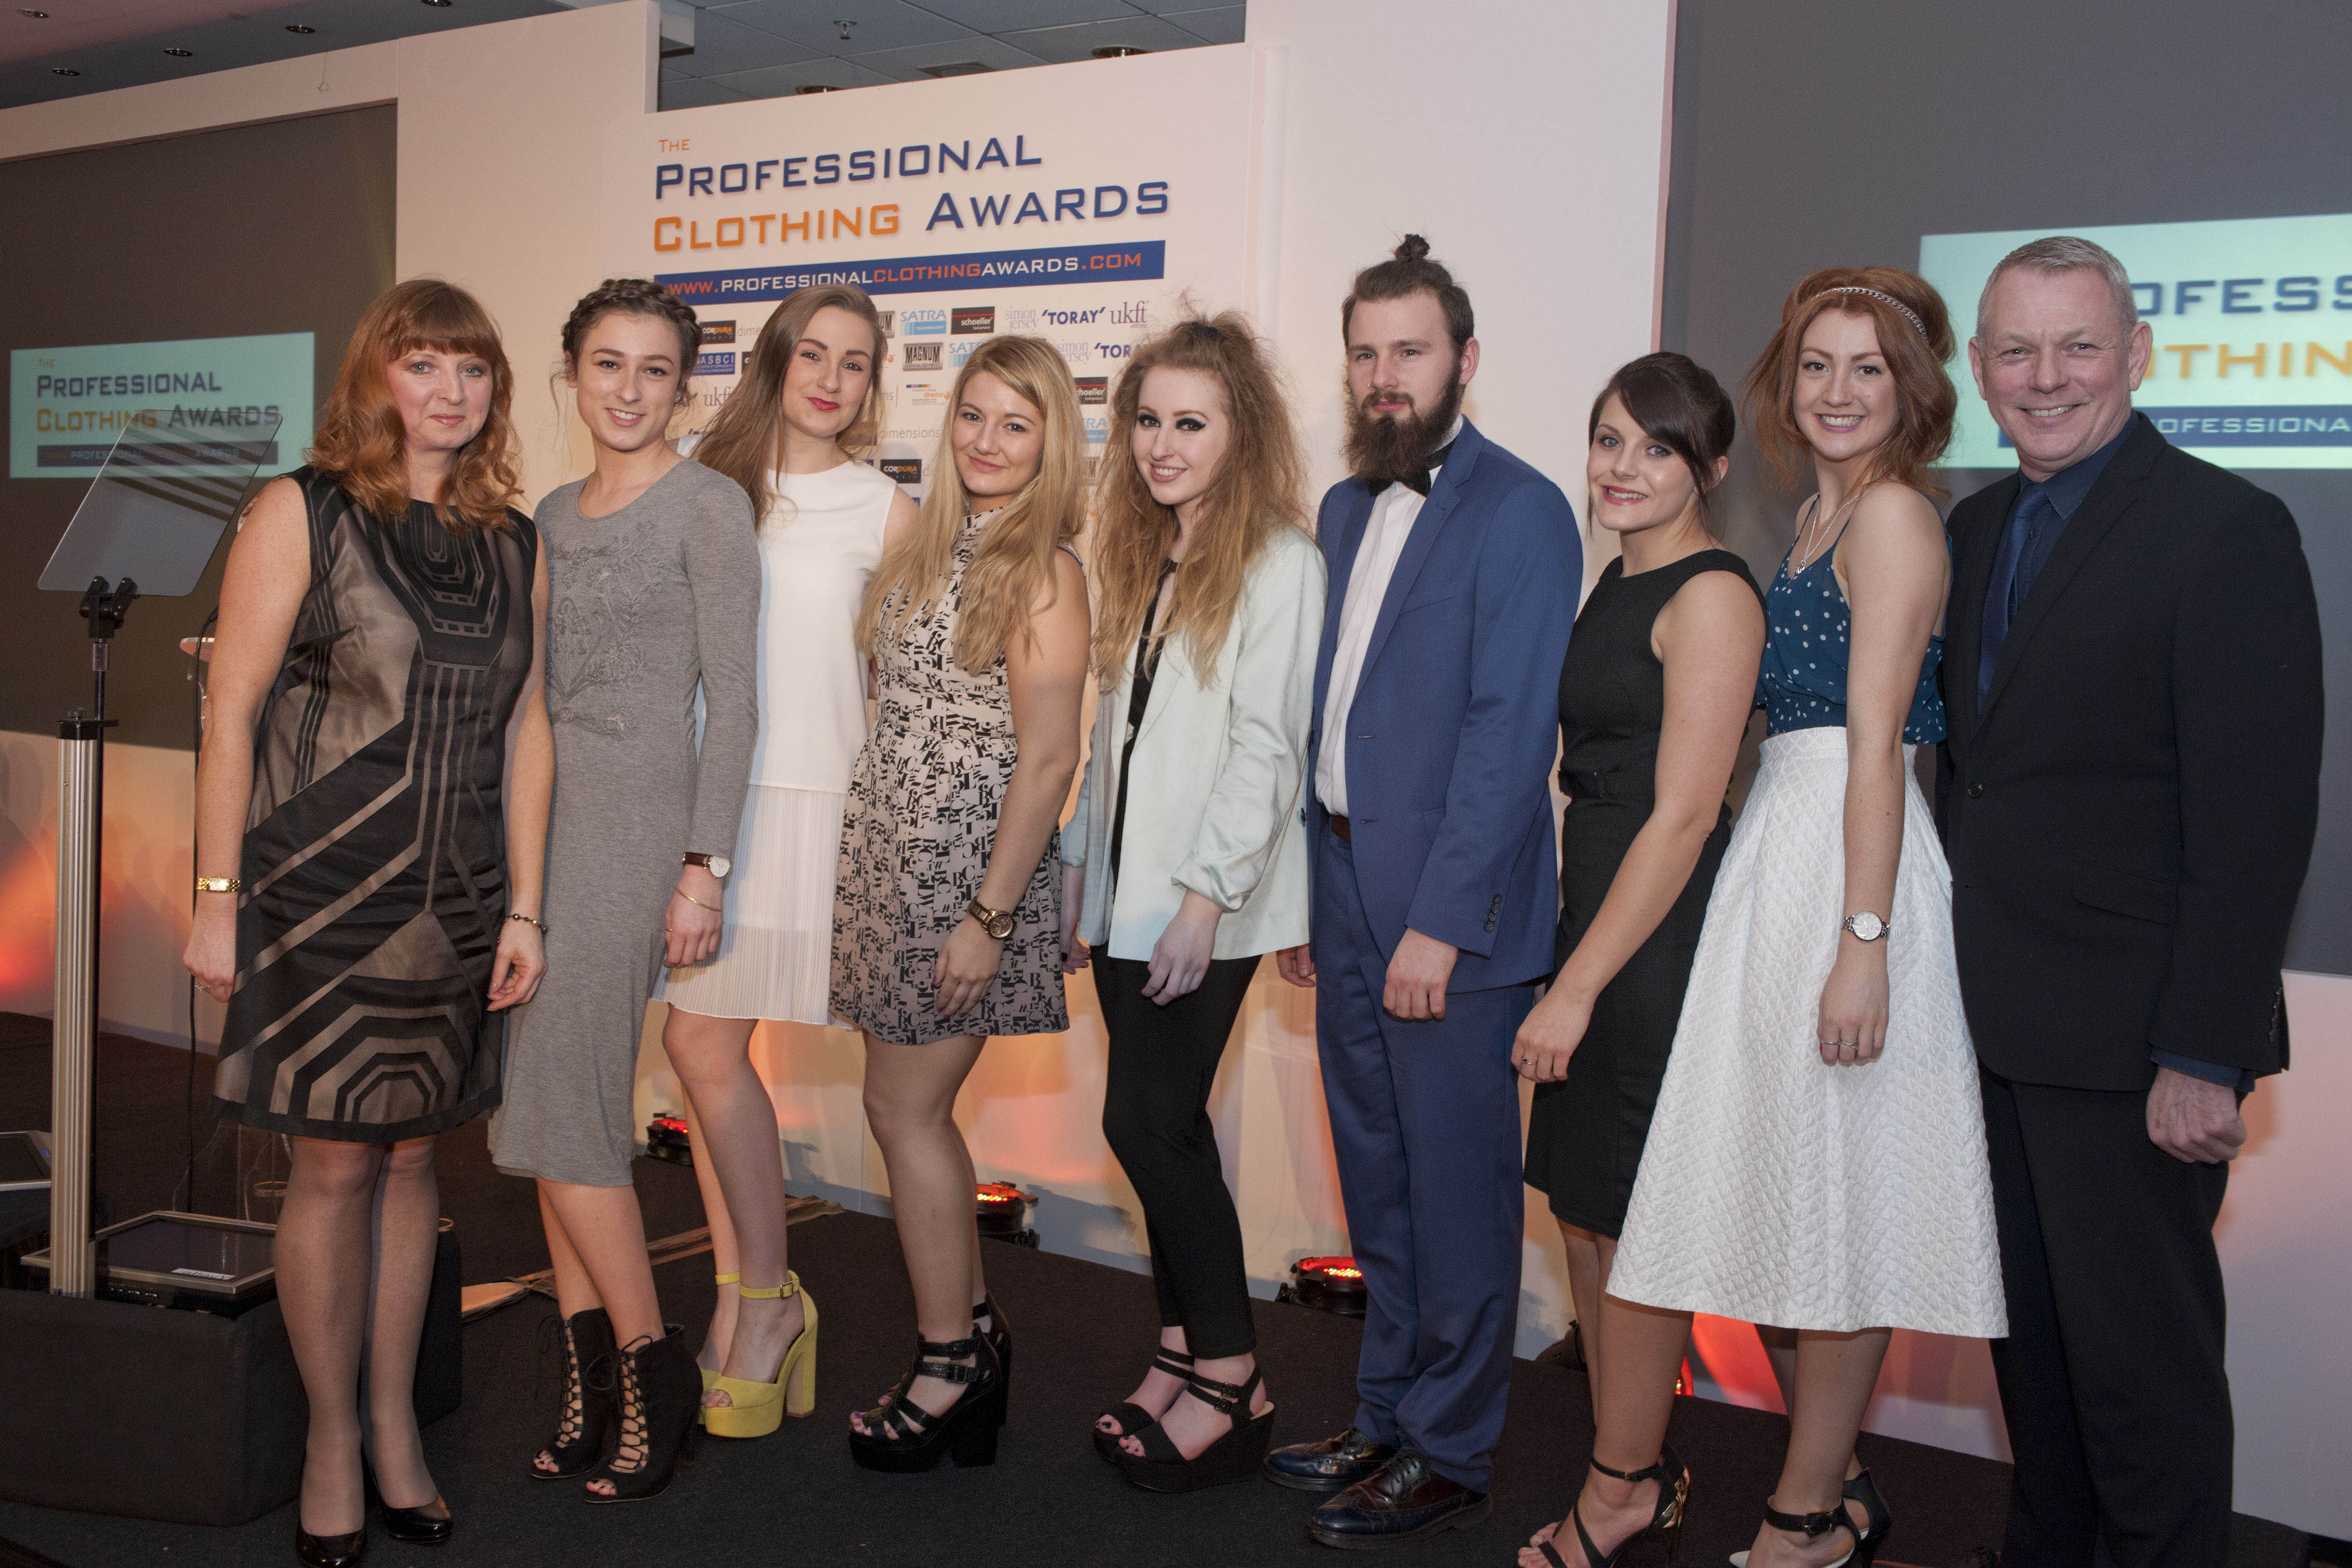 Student Design finalists at the Professional Clothing Awards 2014